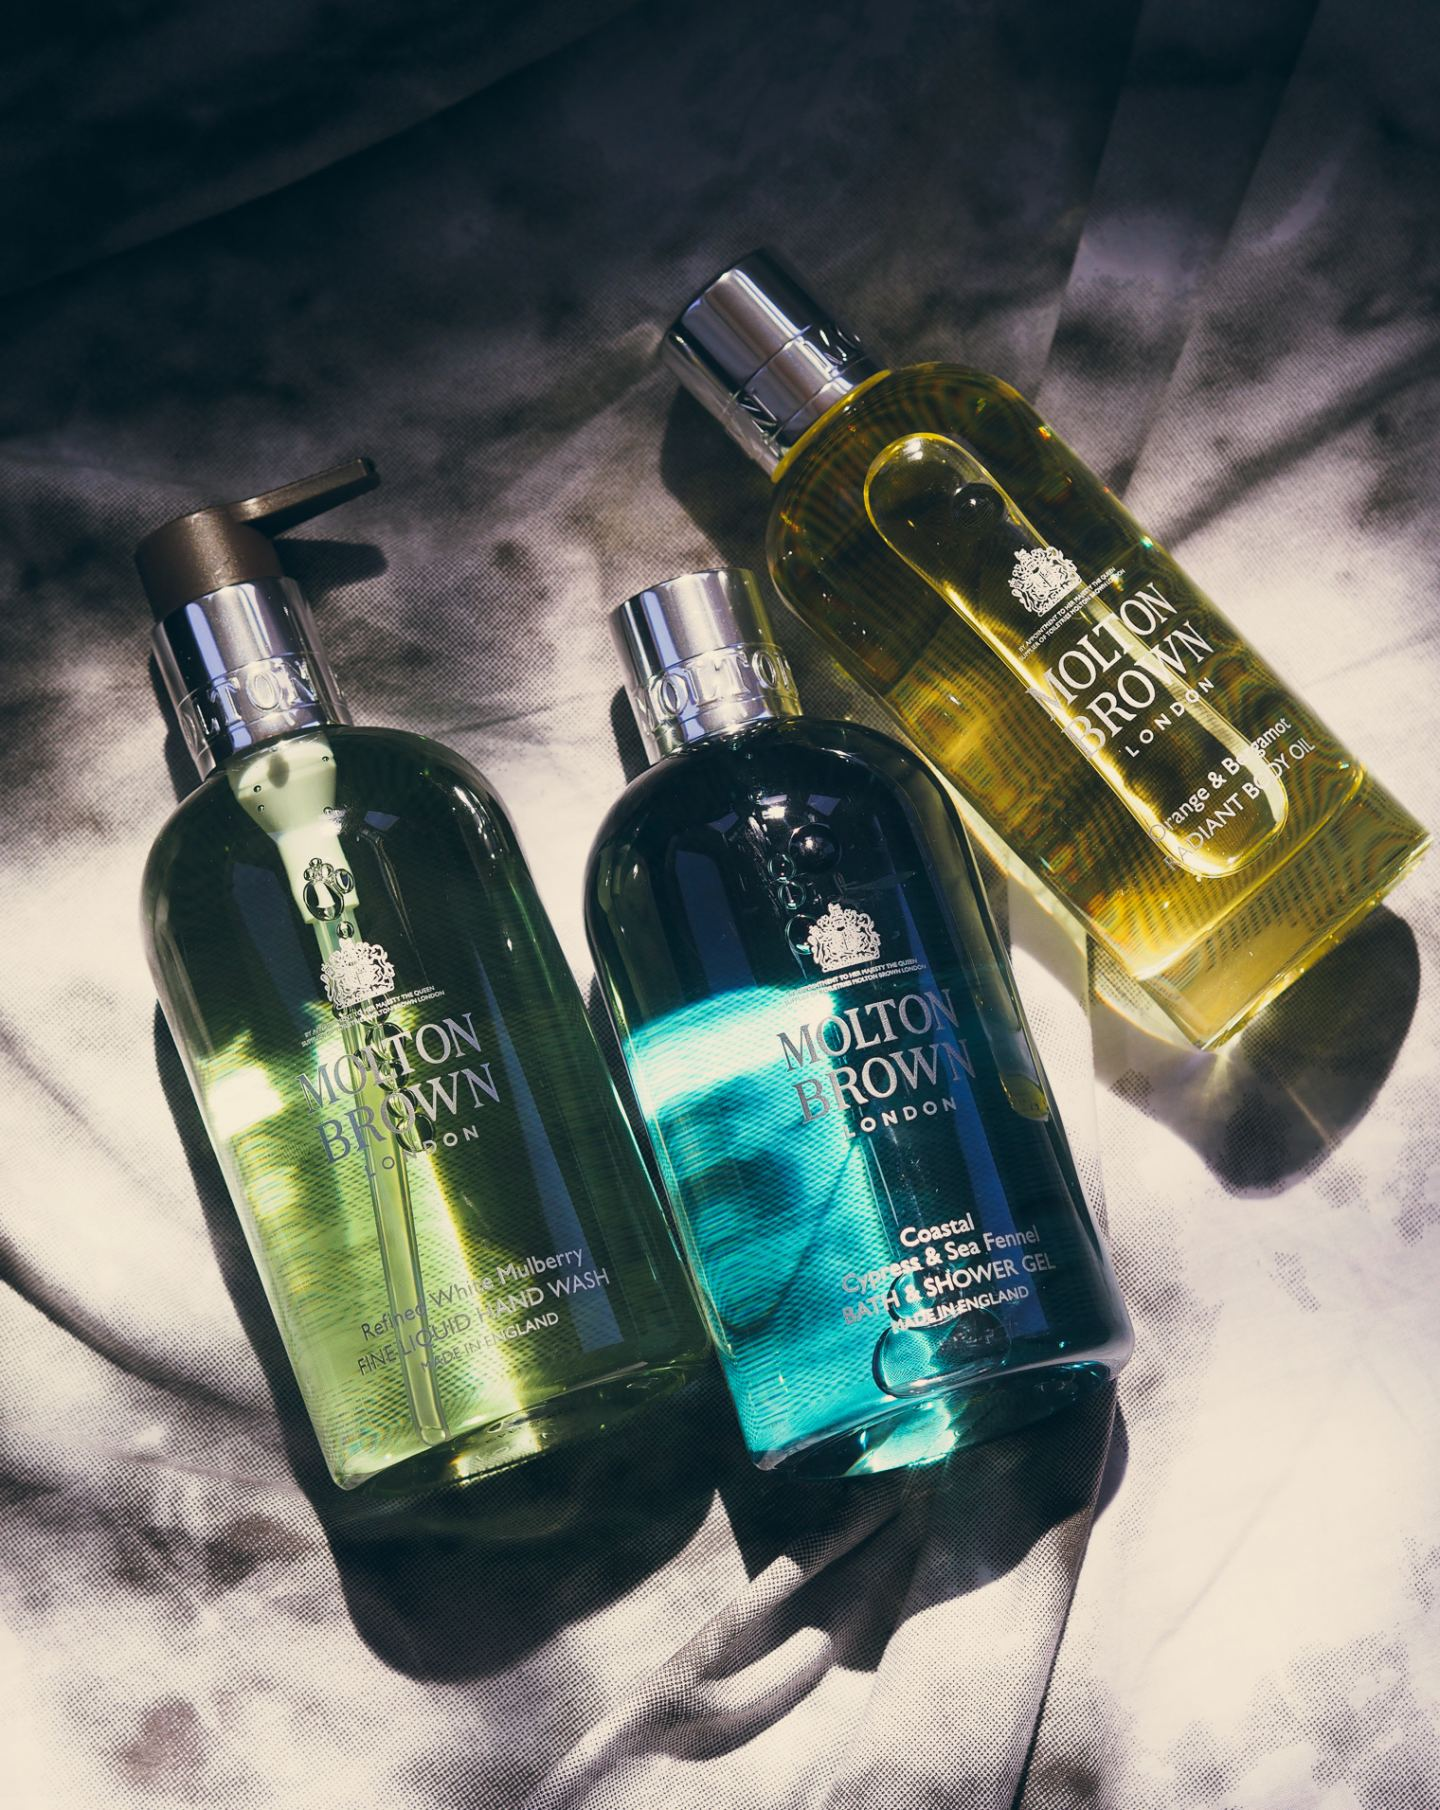 Molton Brown MEGA Deal bargain promo code